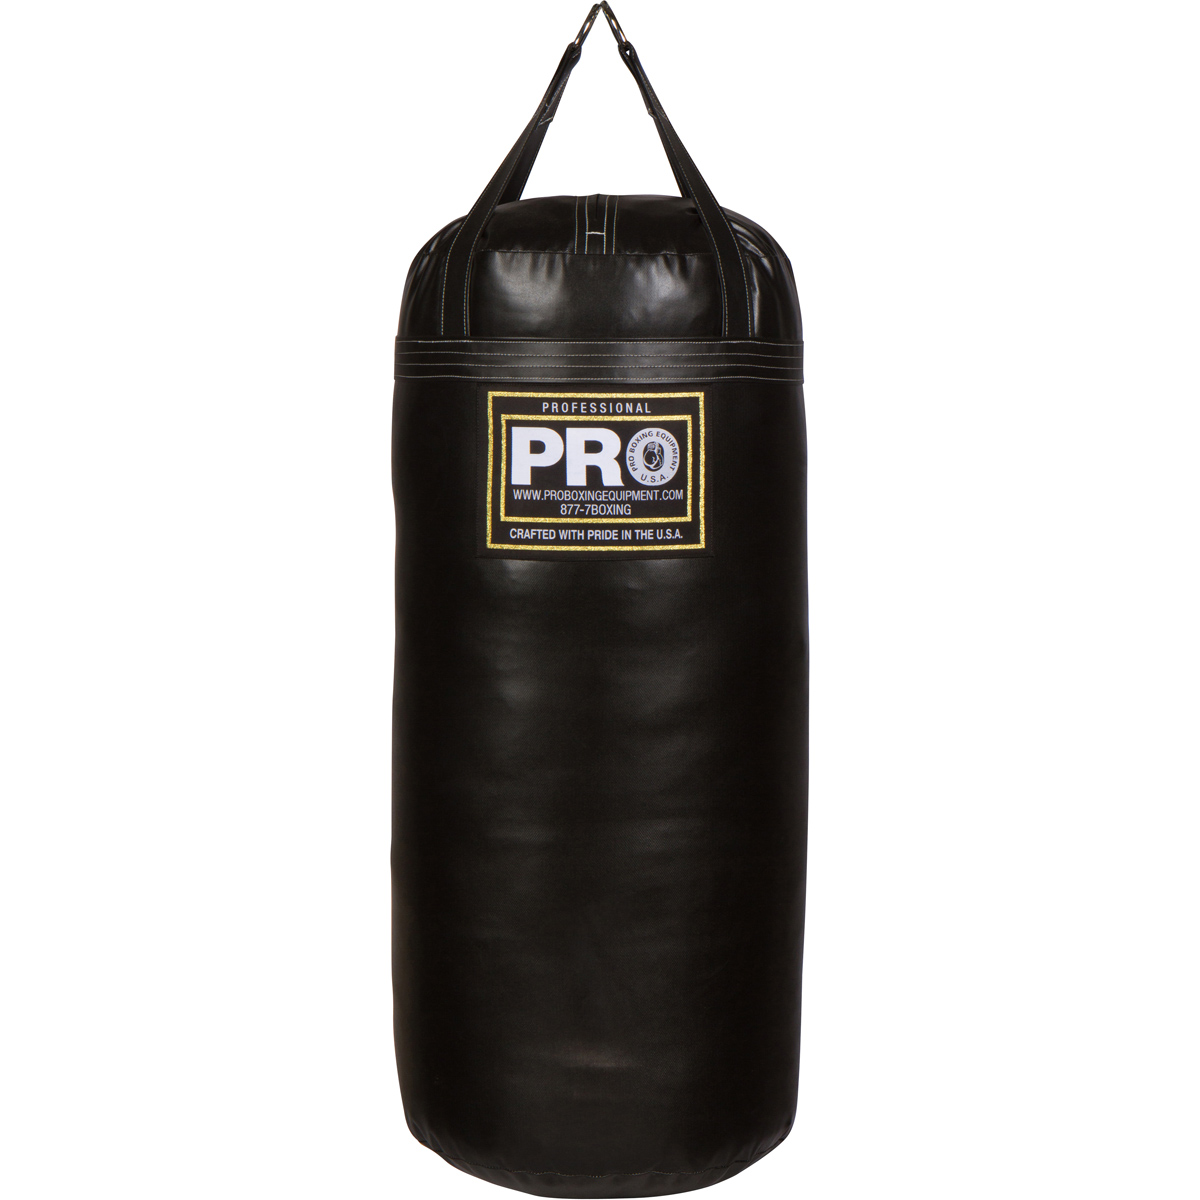 PRO 150 LBS BOXING HEAVY PUNCHING BAG MADE IN USA